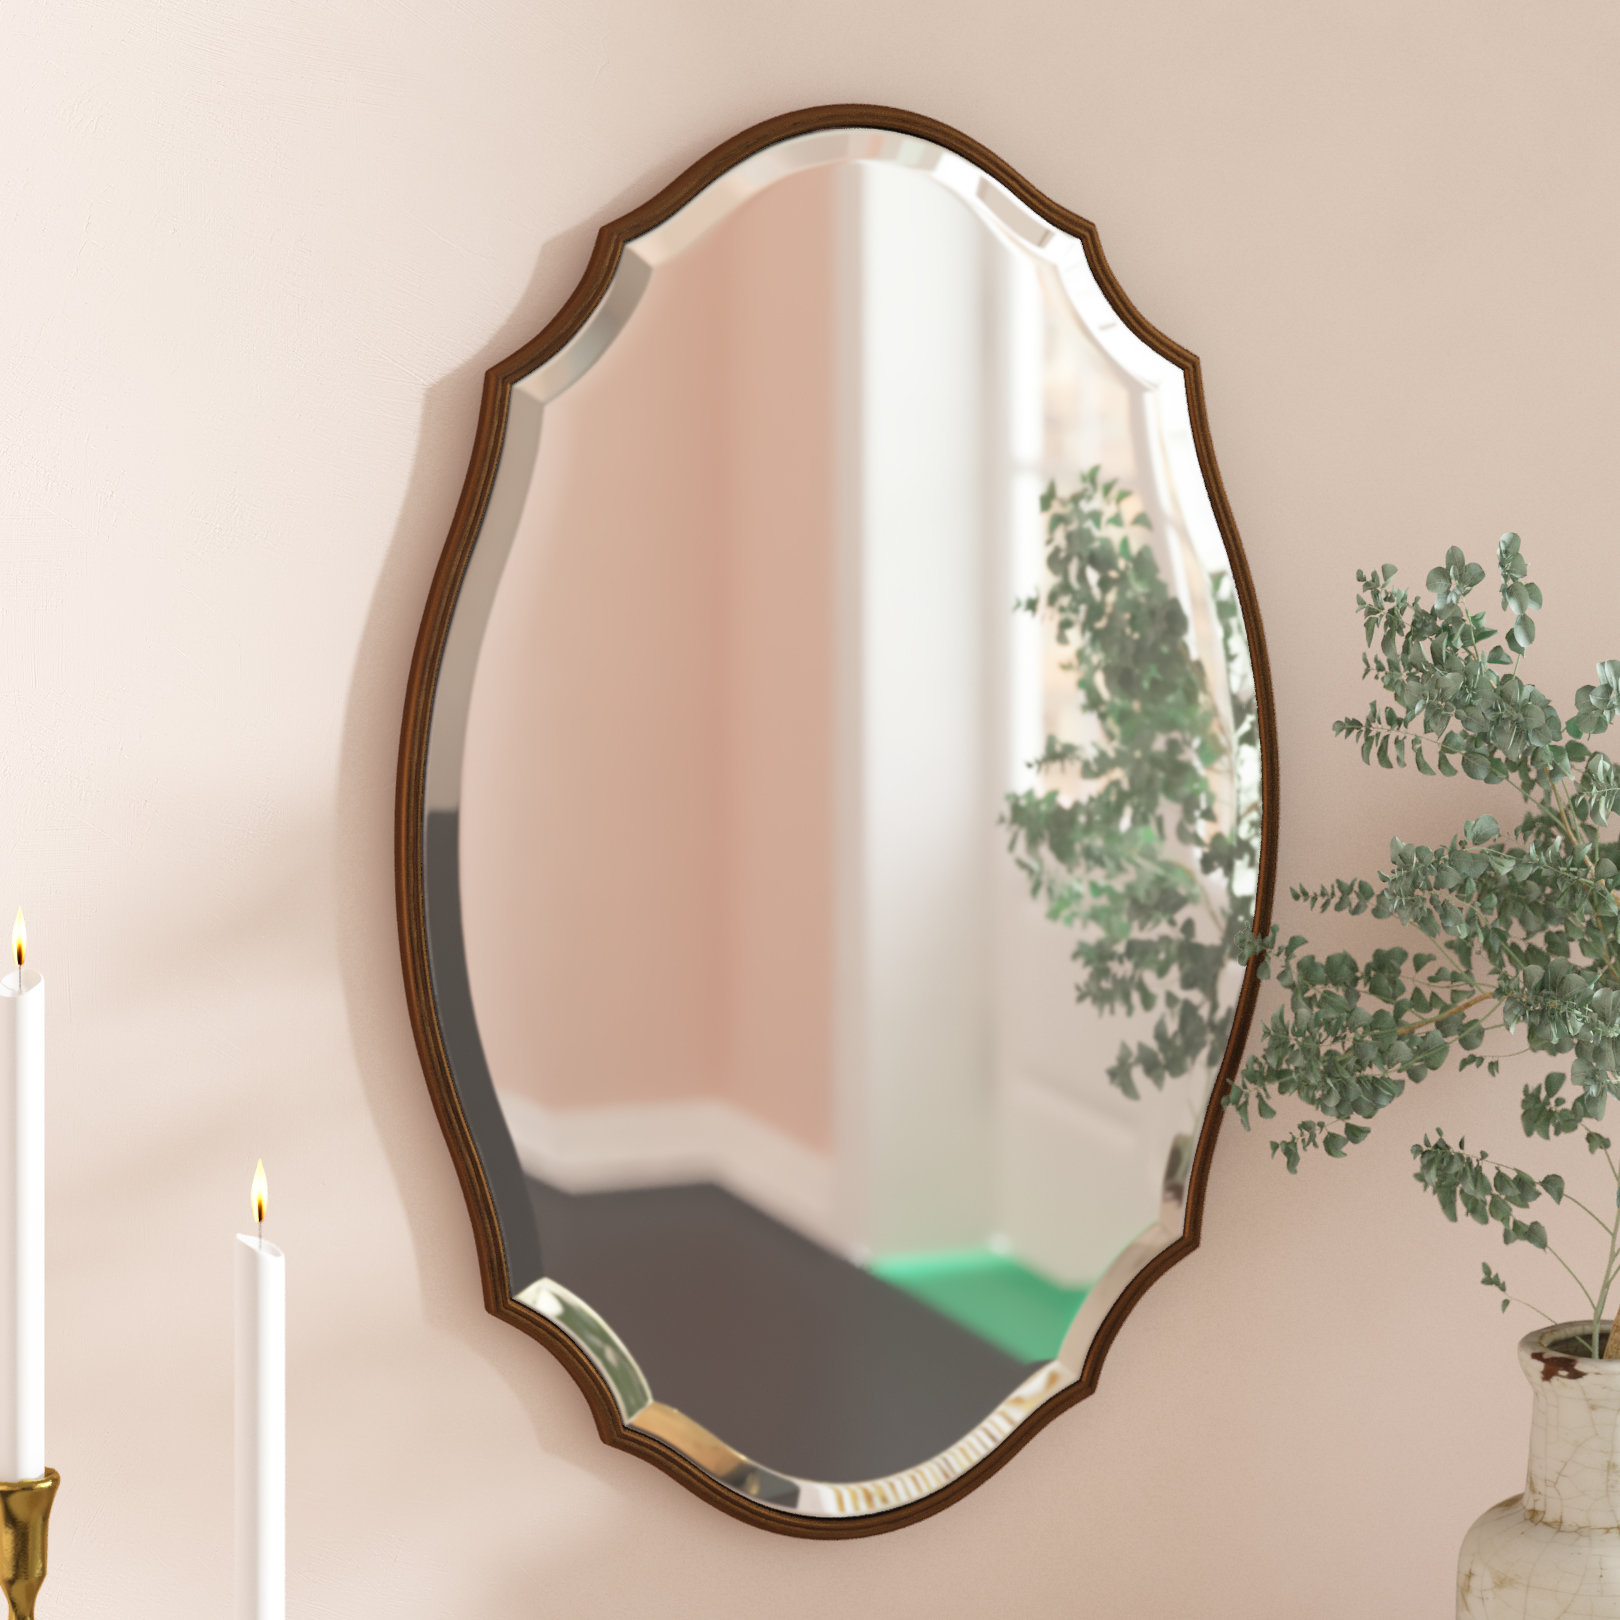 Modern & Contemporary Beveled Accent Mirror Intended For Menachem Modern & Contemporary Accent Mirrors (View 4 of 20)